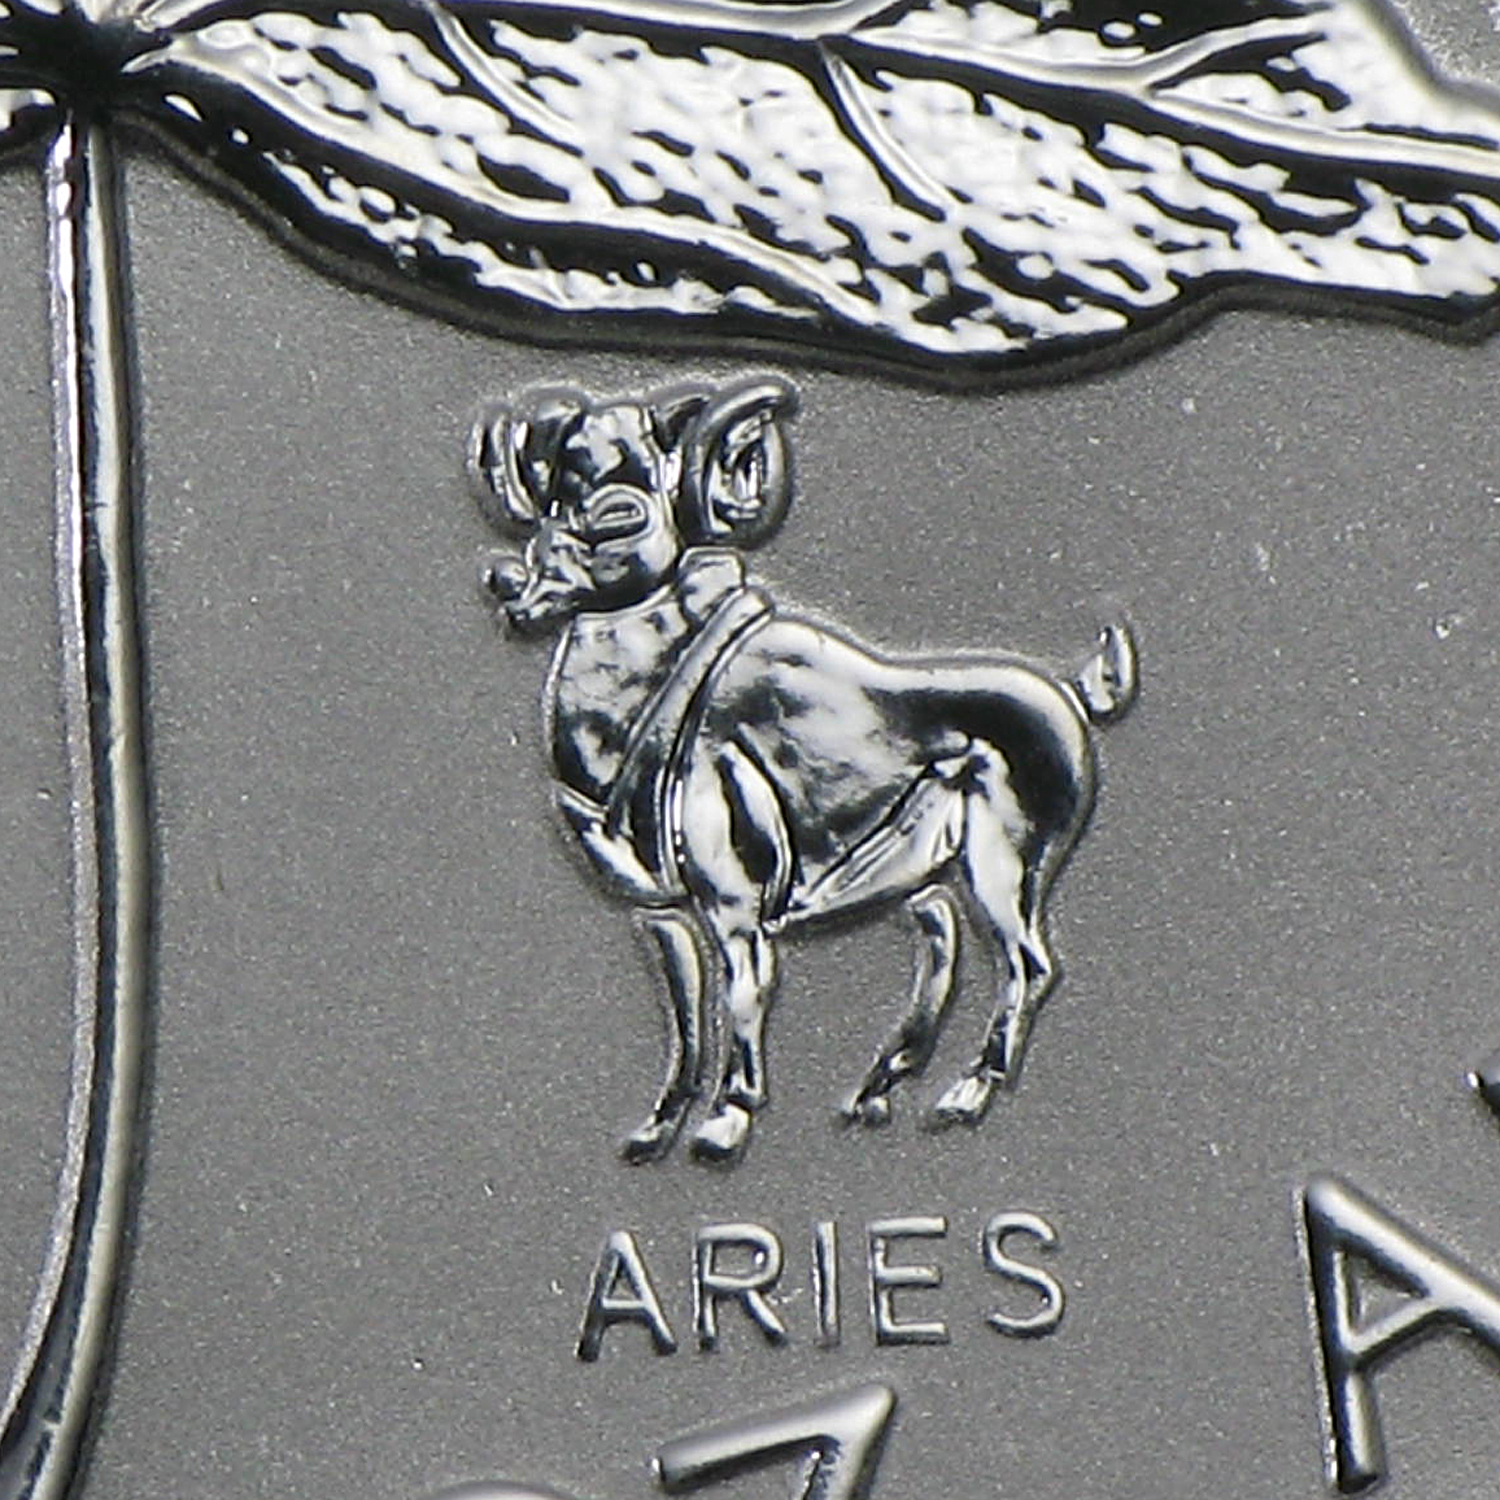 2004 1 oz Silver Canadian Maple Leaf - Aries Zodiac Privy